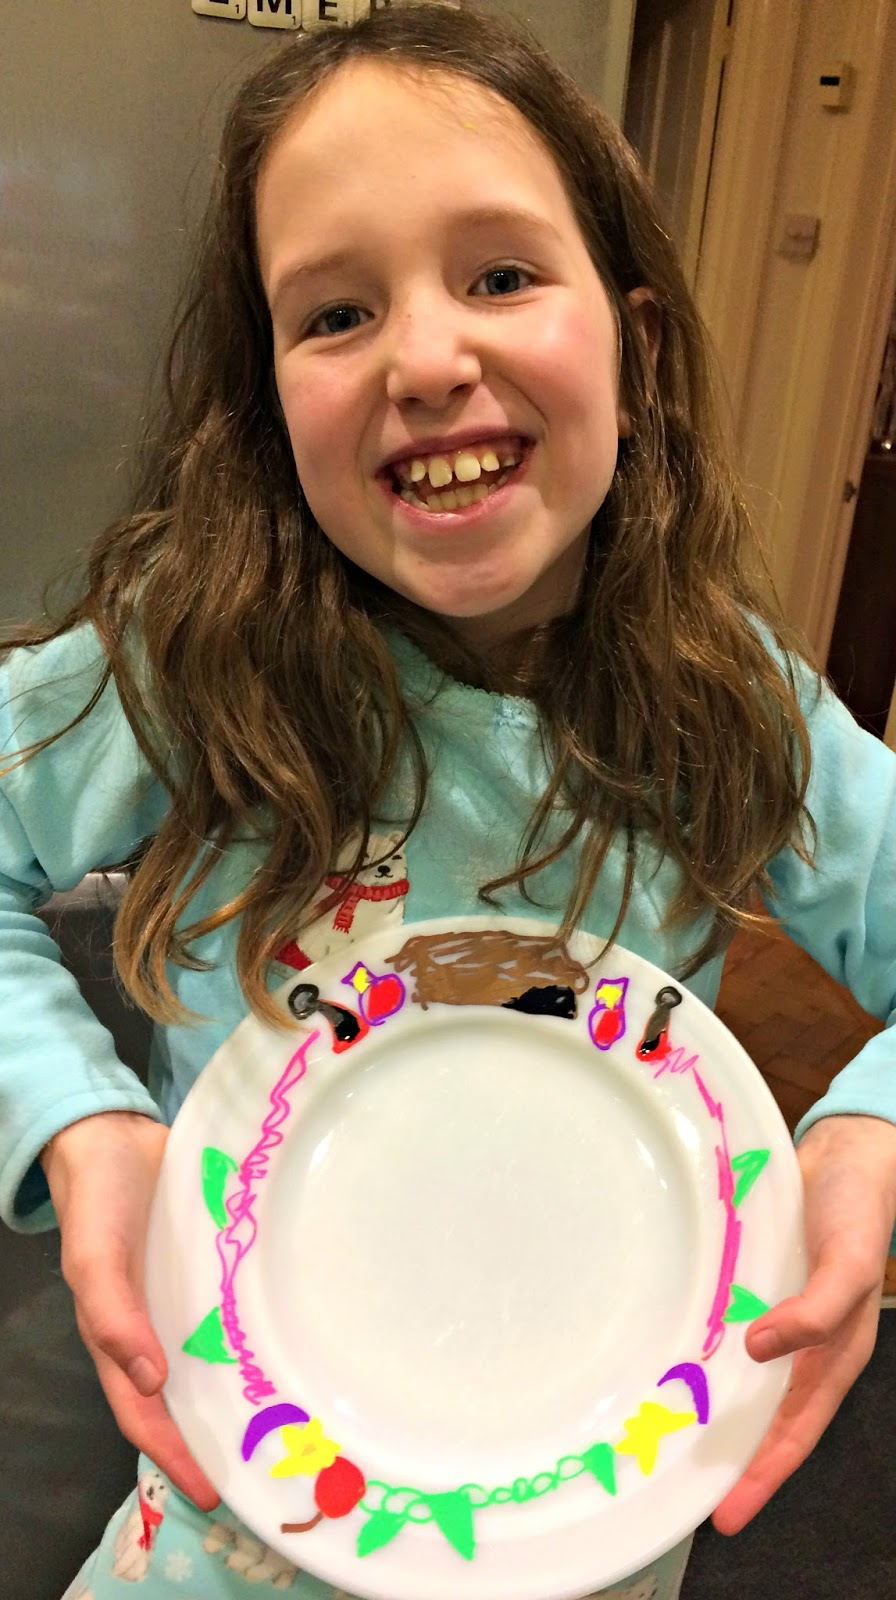 Caitlin holding plate decorated with Chalkola markers